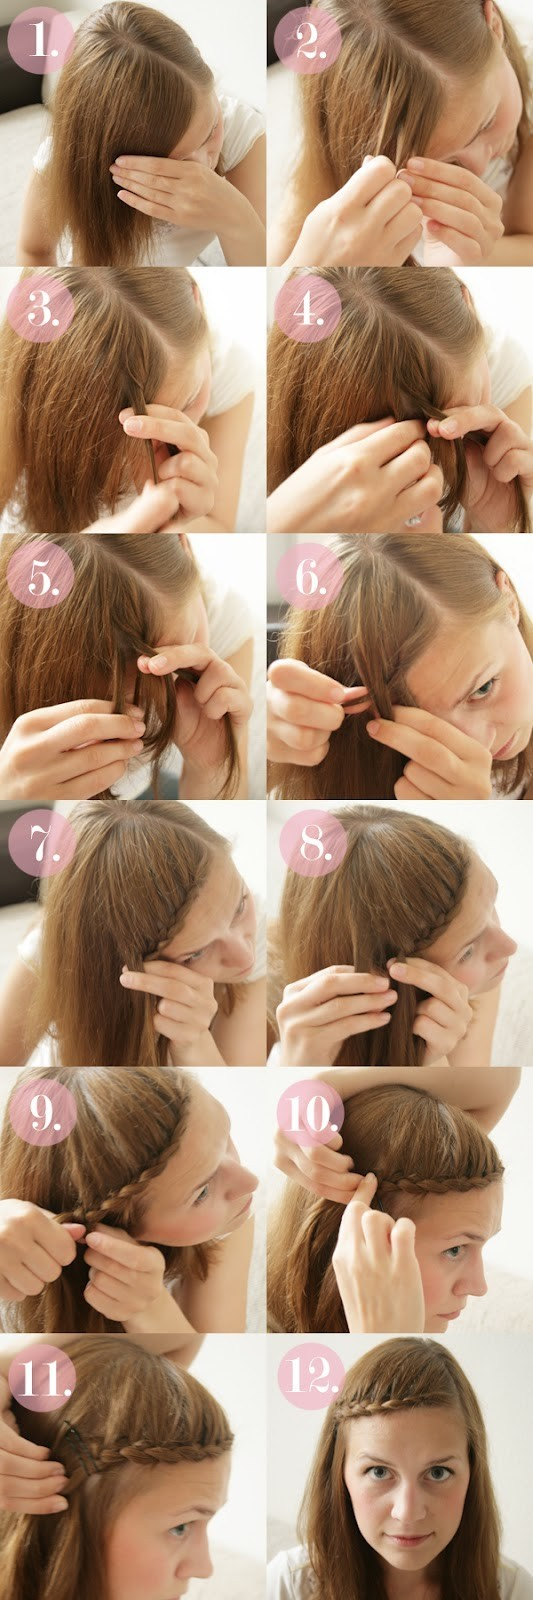 15 Braided Bangs Tutorial: Cute Braided Hairstyles